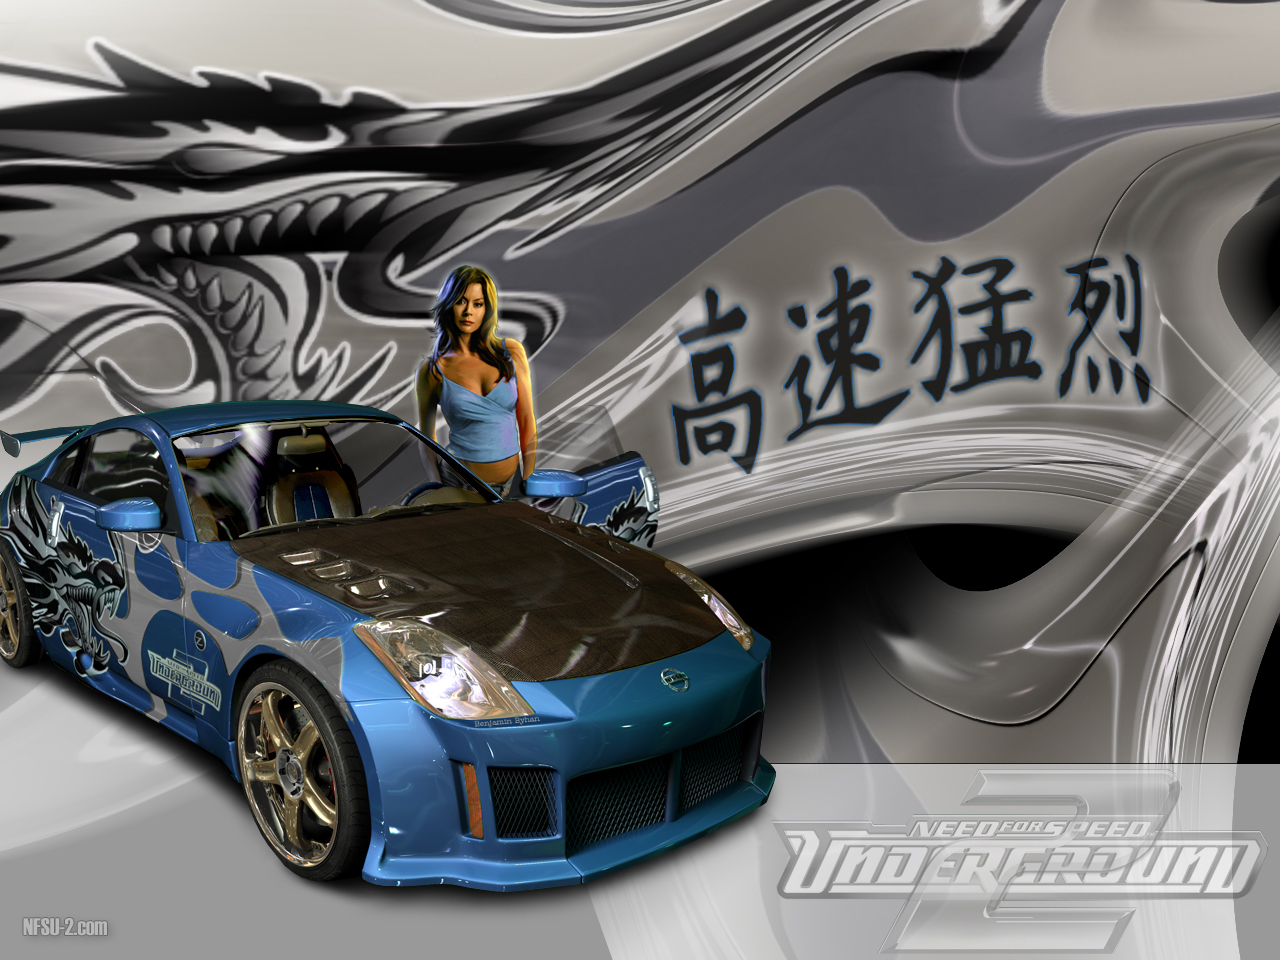 49 need for speed underground wallpaper on wallpapersafari - Need for speed underground 1 wallpaper ...